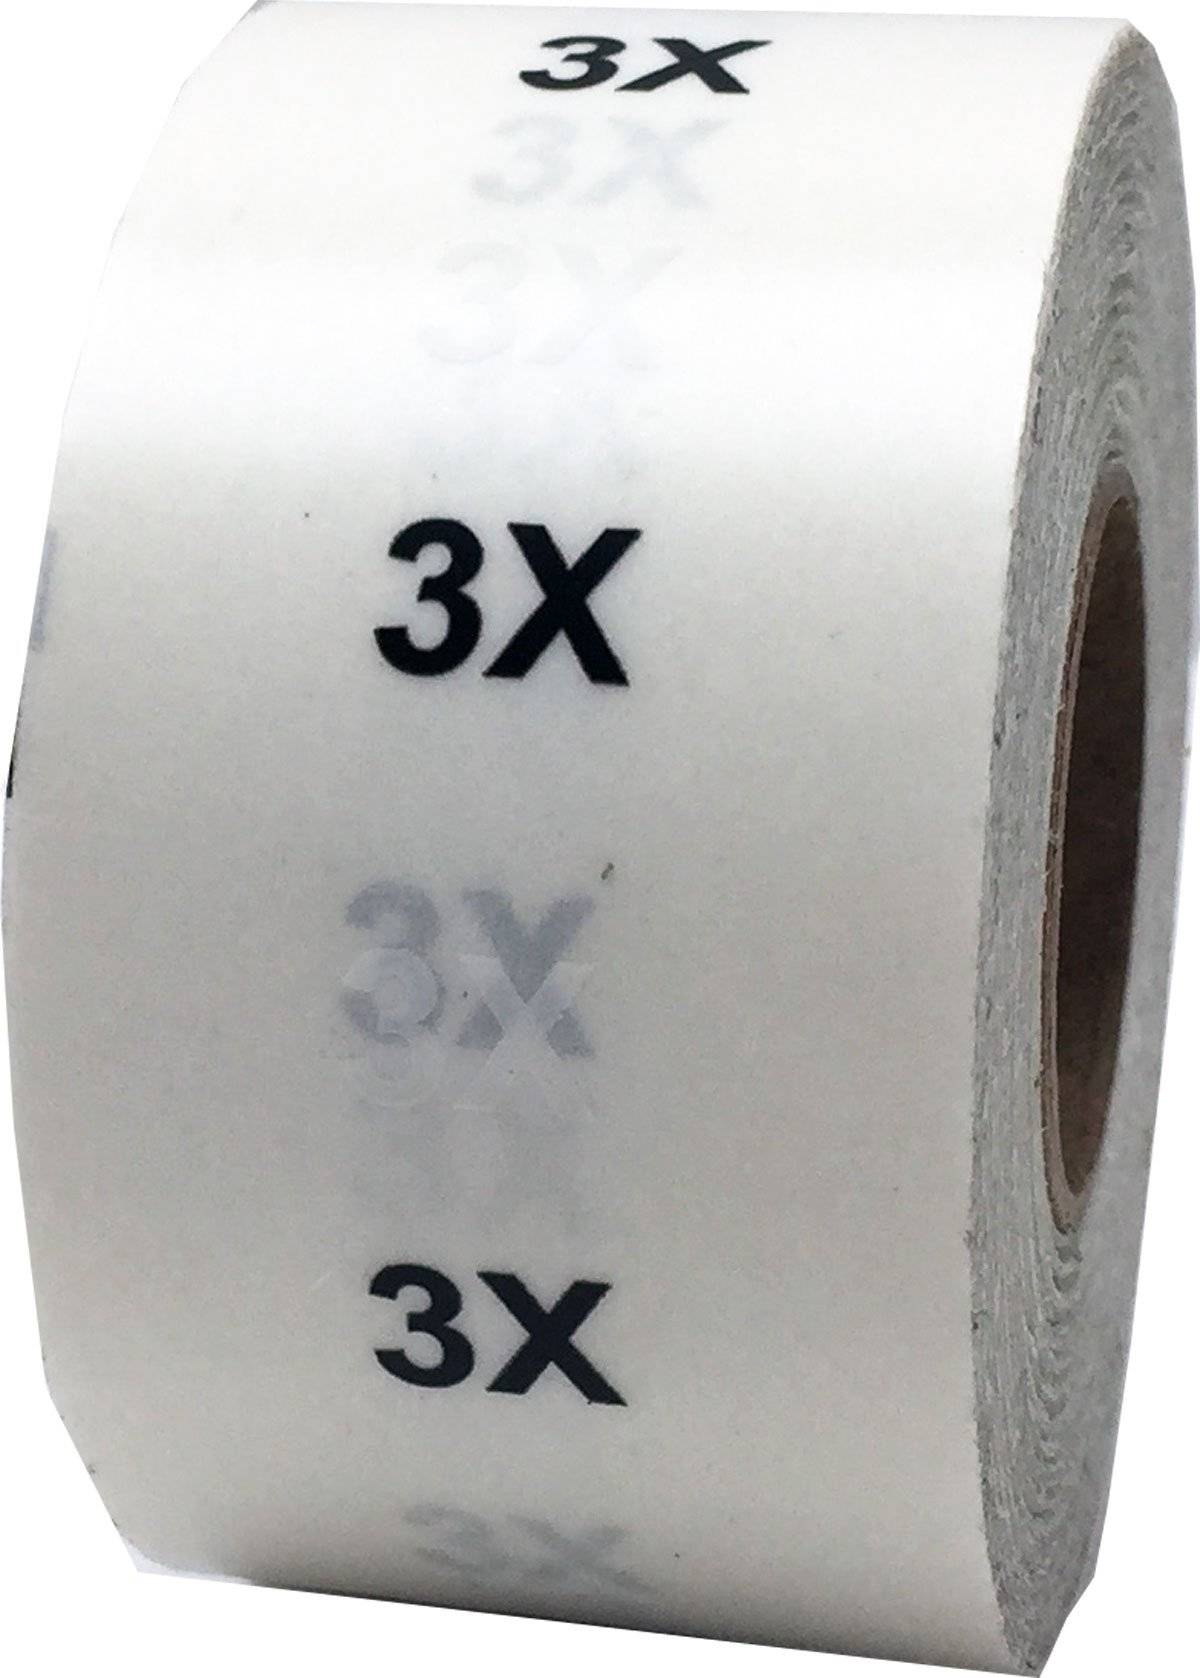 3X New Modern Style Clear Clothing Size Stickers For Retail Store Supplies Apparel Safe Adhesive Size Labels For Clothing 125 Size Labels On A Roll Stick On Clothing Labels